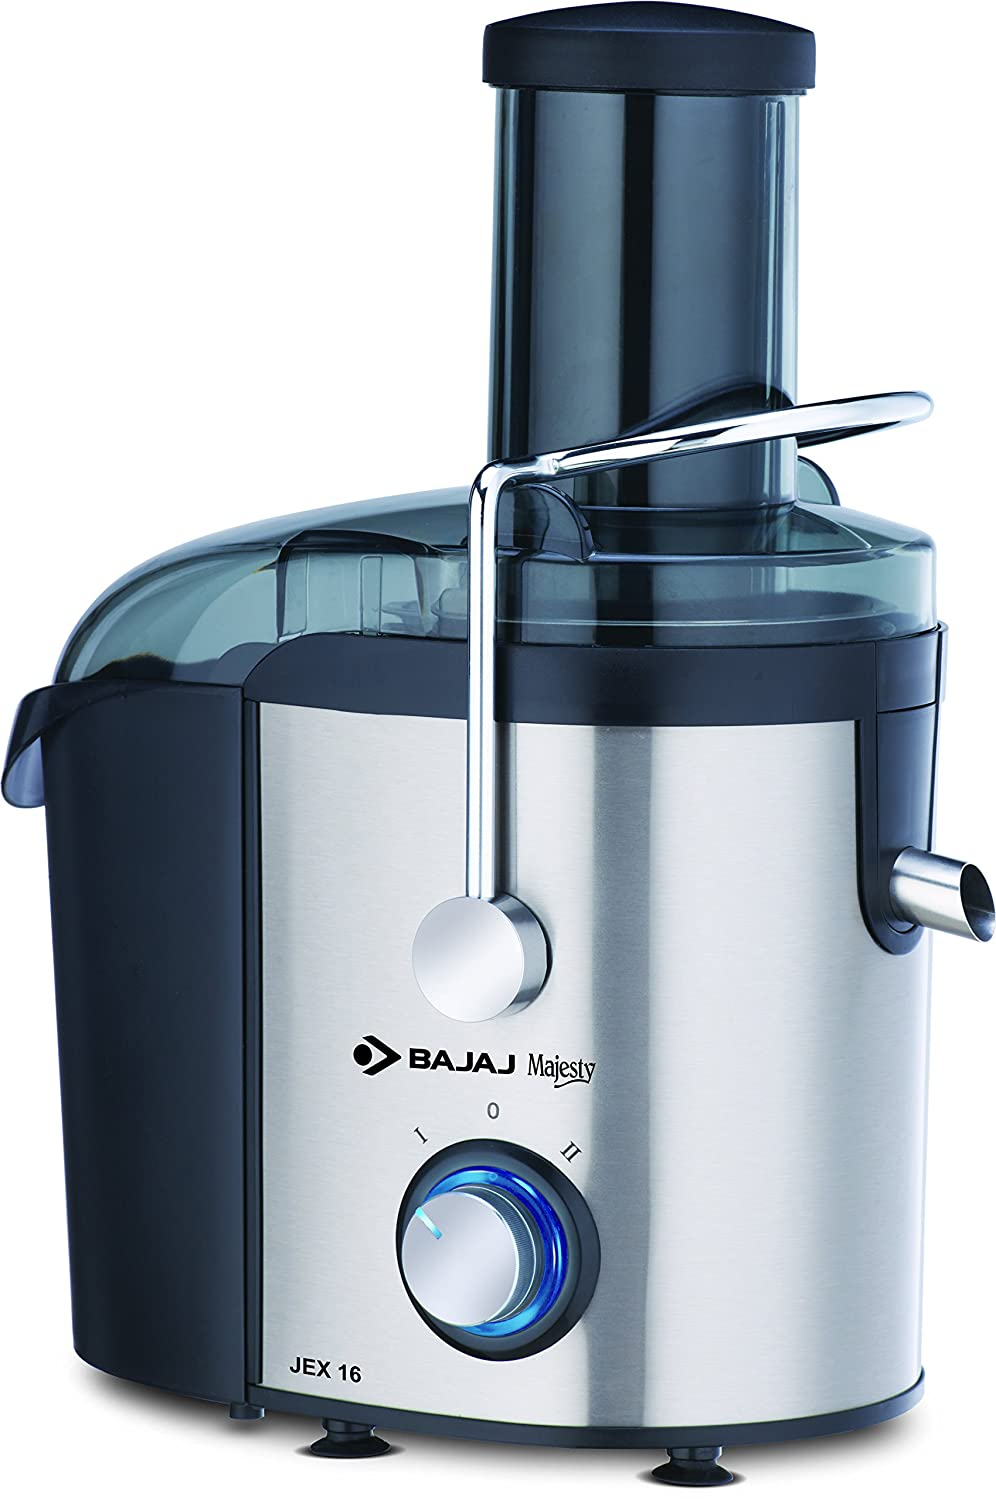 Bajaj JEX 16 800-Watt Juicer (Black)